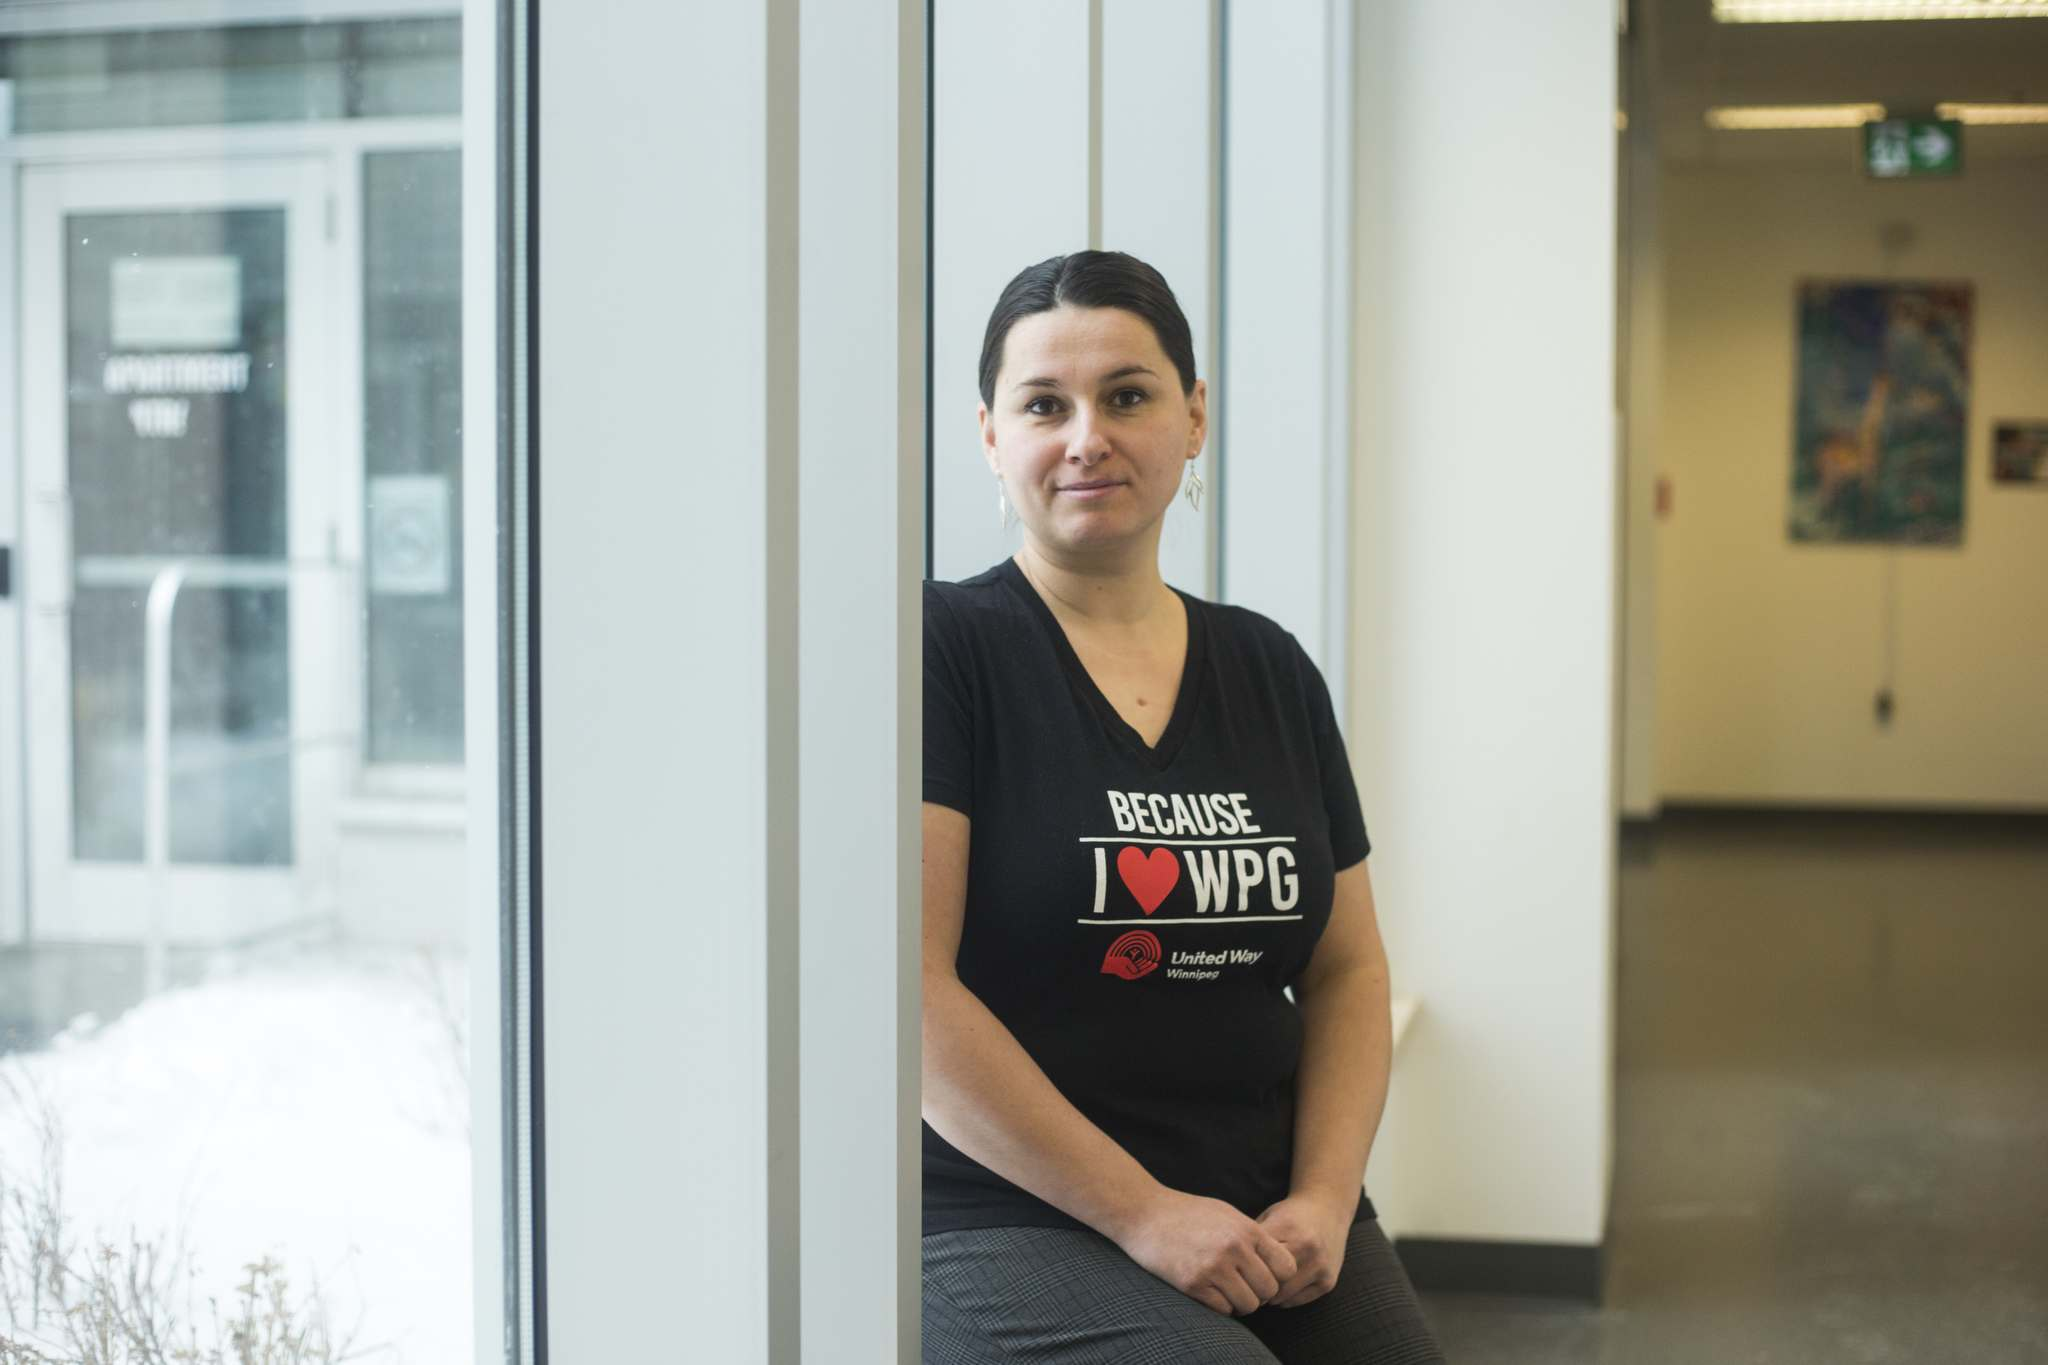 The provision of community services makes for safer communities, says Dorota Blumczynska, executive director of the Immigrant and Refugee Community Organization of Manitoba. (Mikaela MacKenzie / Winnipeg Free Press files)